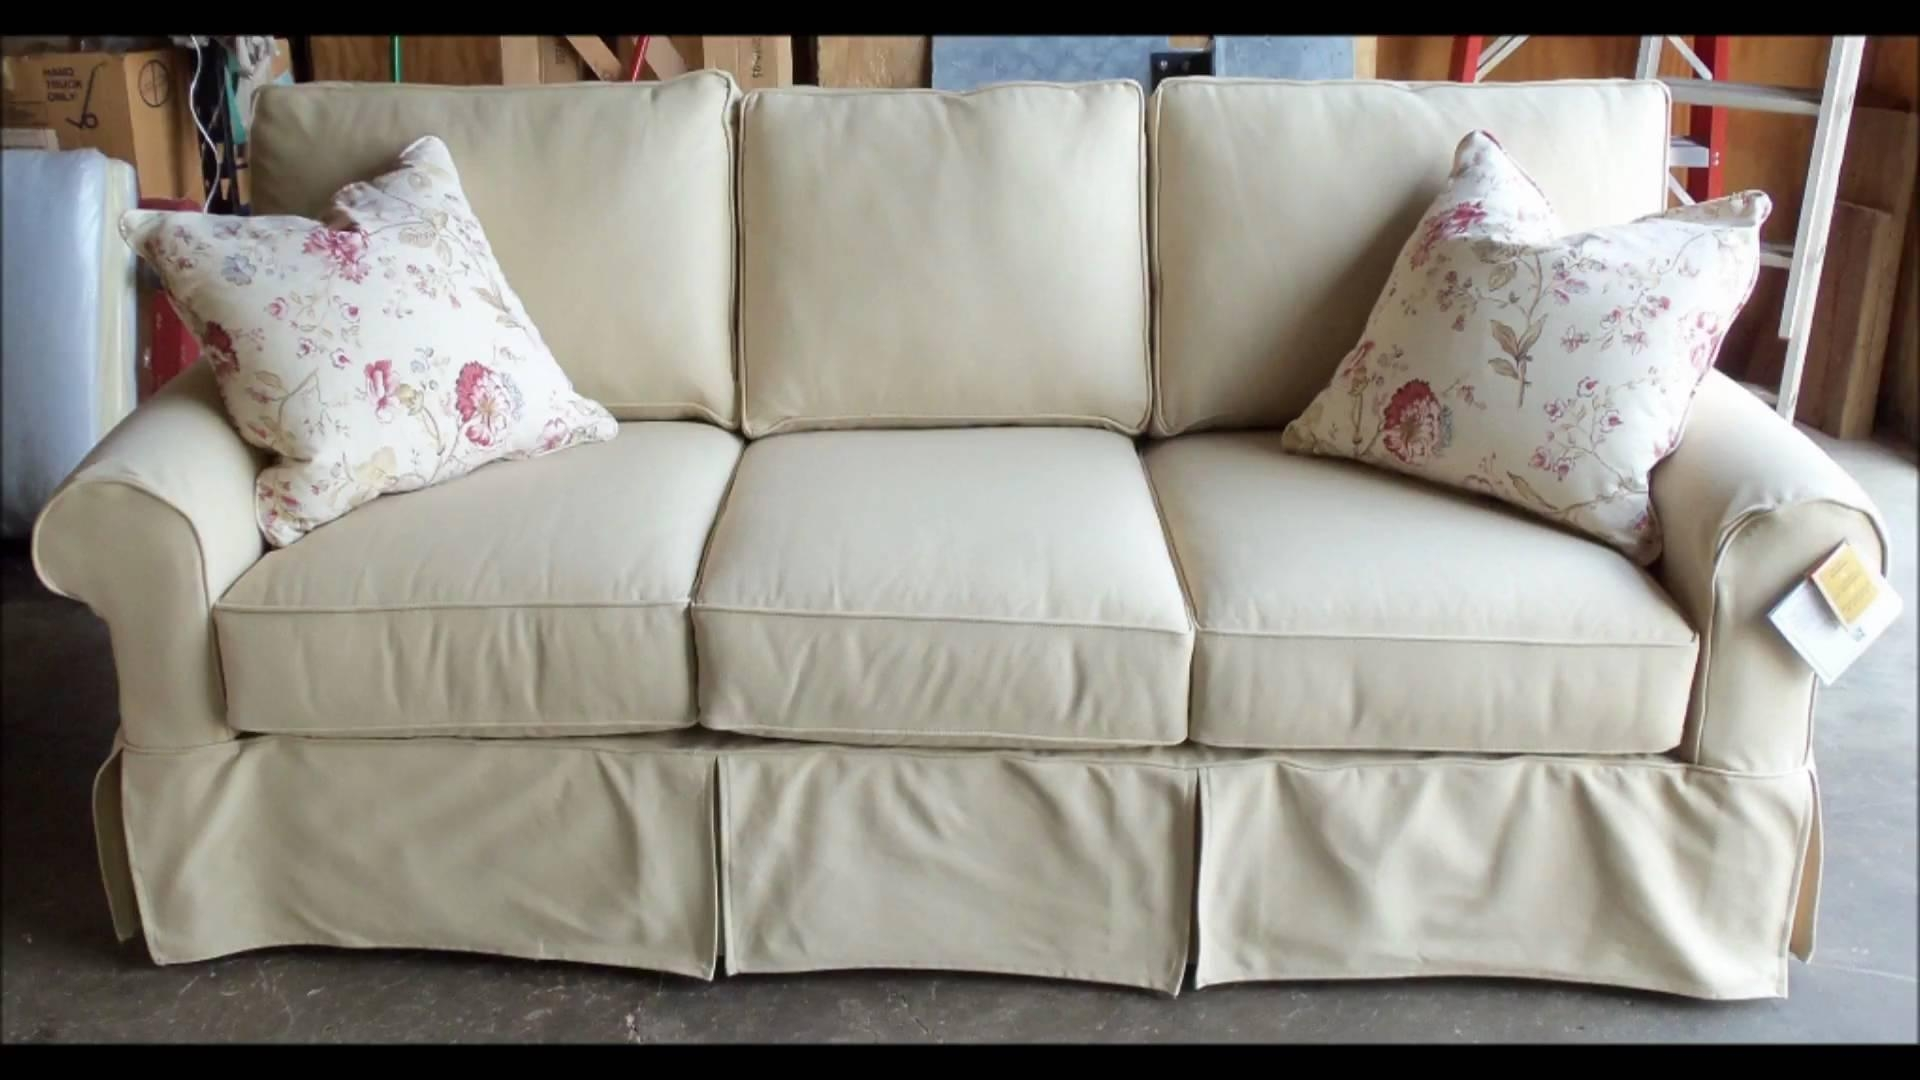 Rowe Furniture Slipcover Sofas  Barnett Furniture Trussville With Slipcovers For Sofas And Chairs (Image 19 of 20)